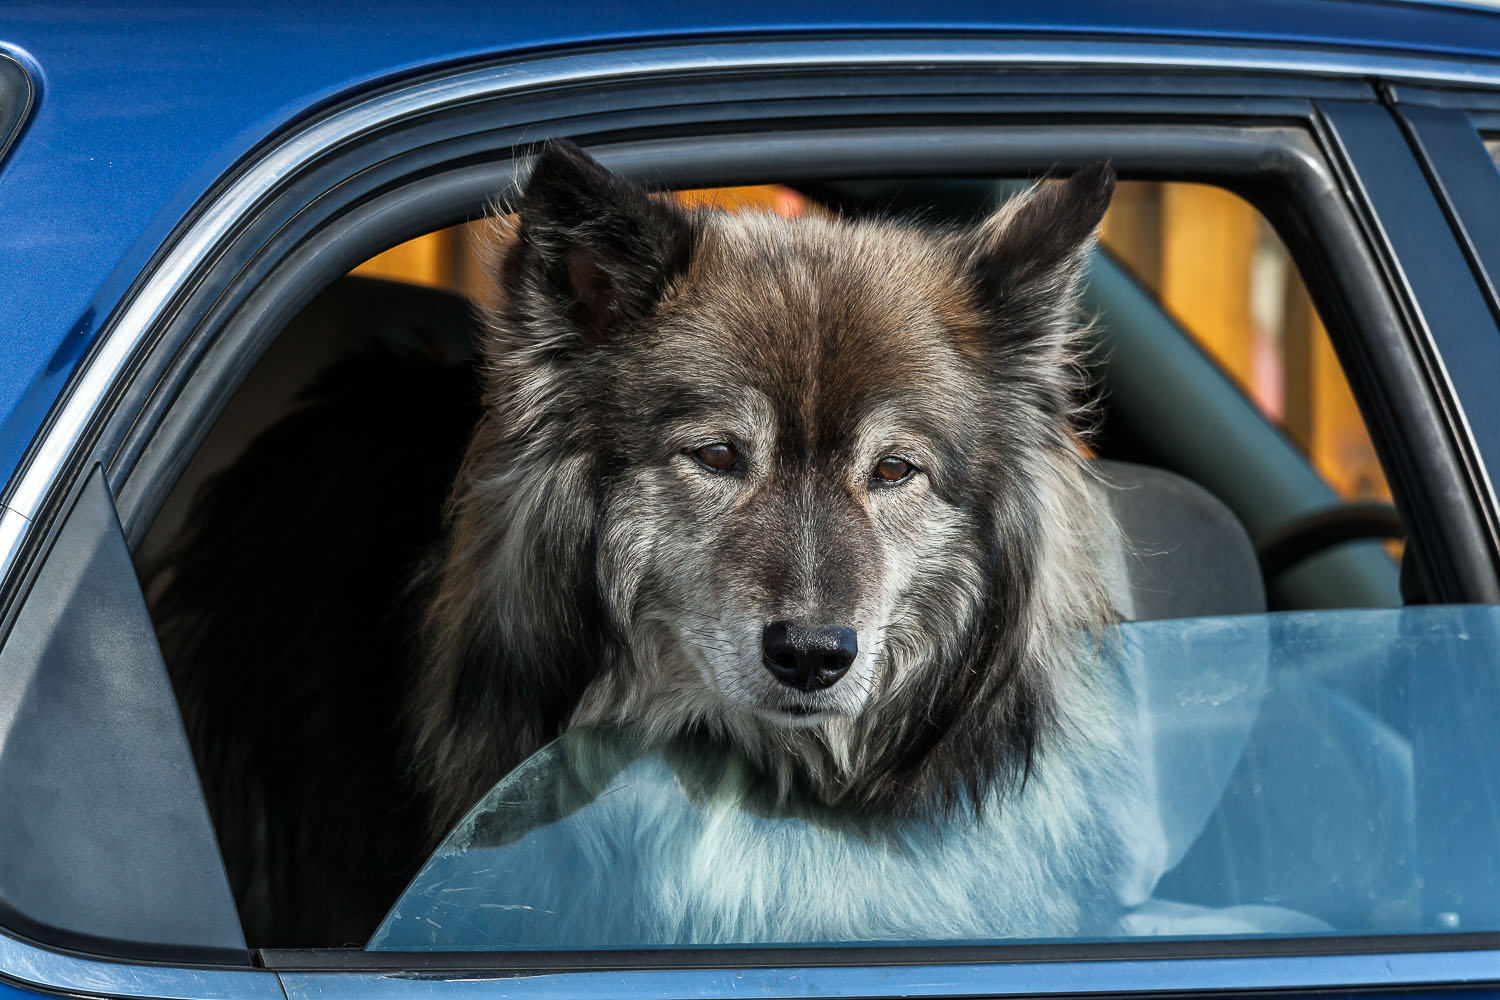 A calm and friendly dog pokes his head through a car window to greet passers by in the seaside town of Húsavik in Northern Iceland.